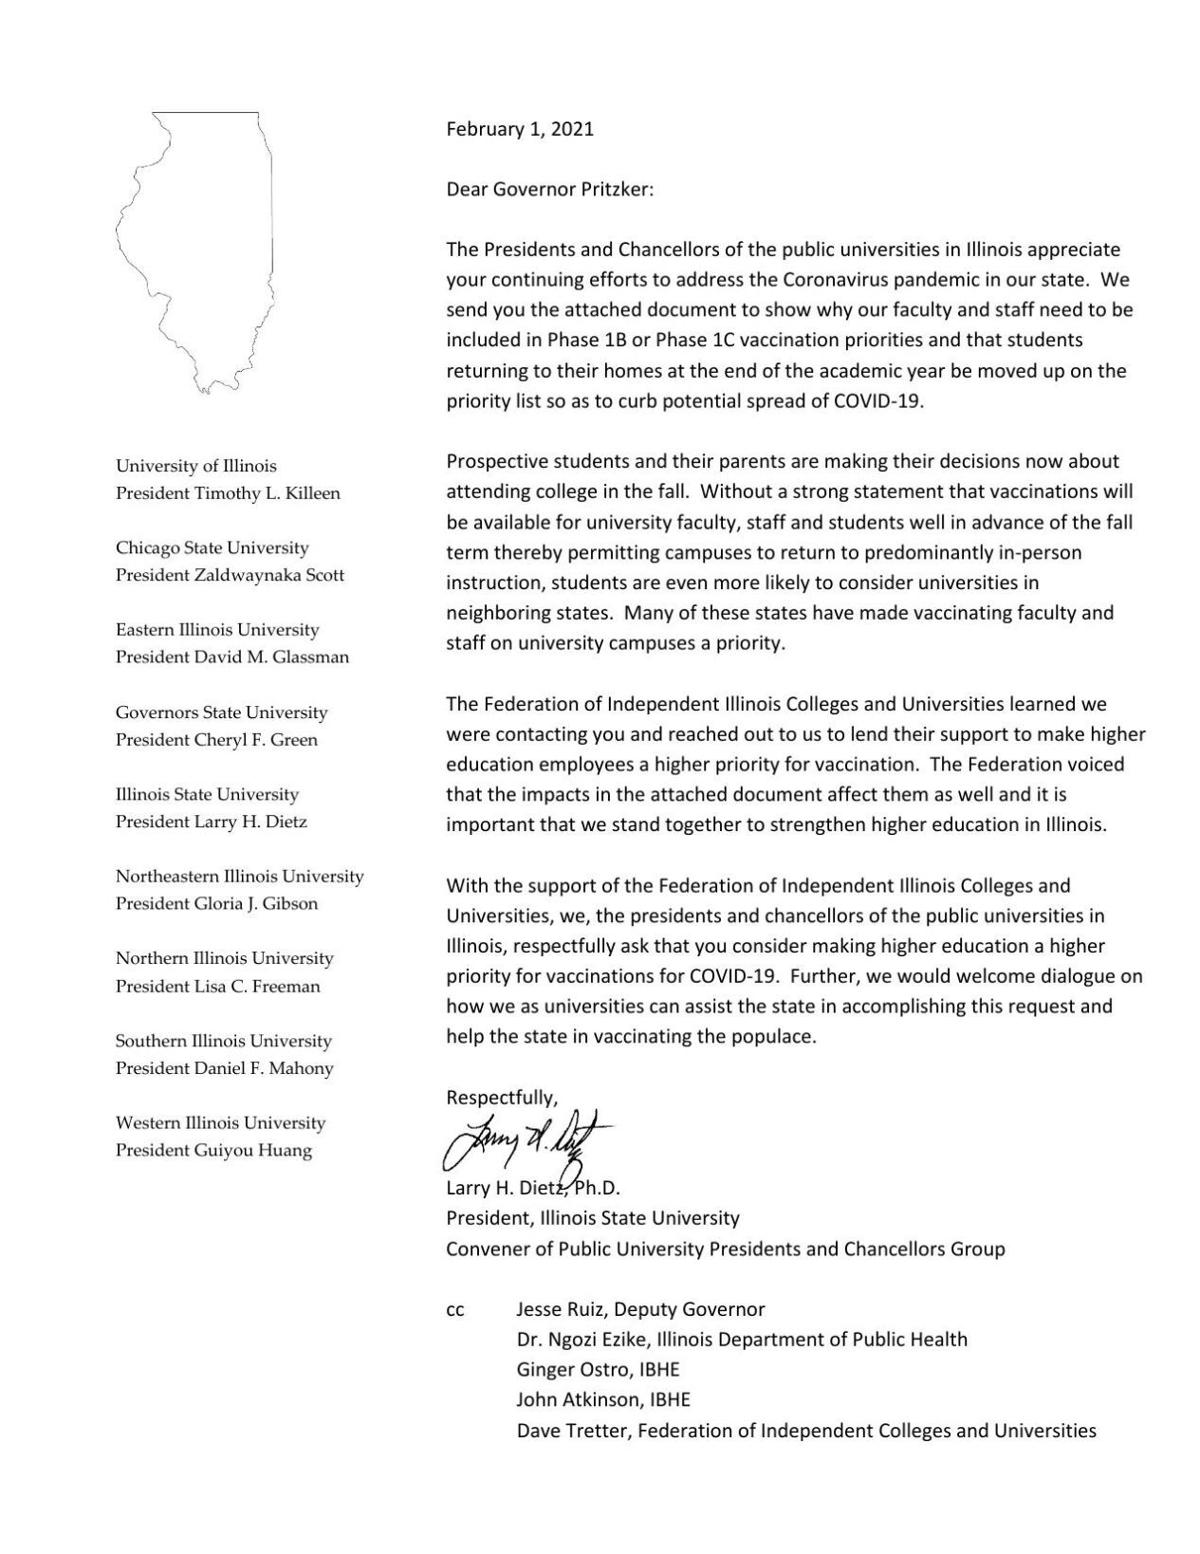 Letter calls for expanded vaccinations